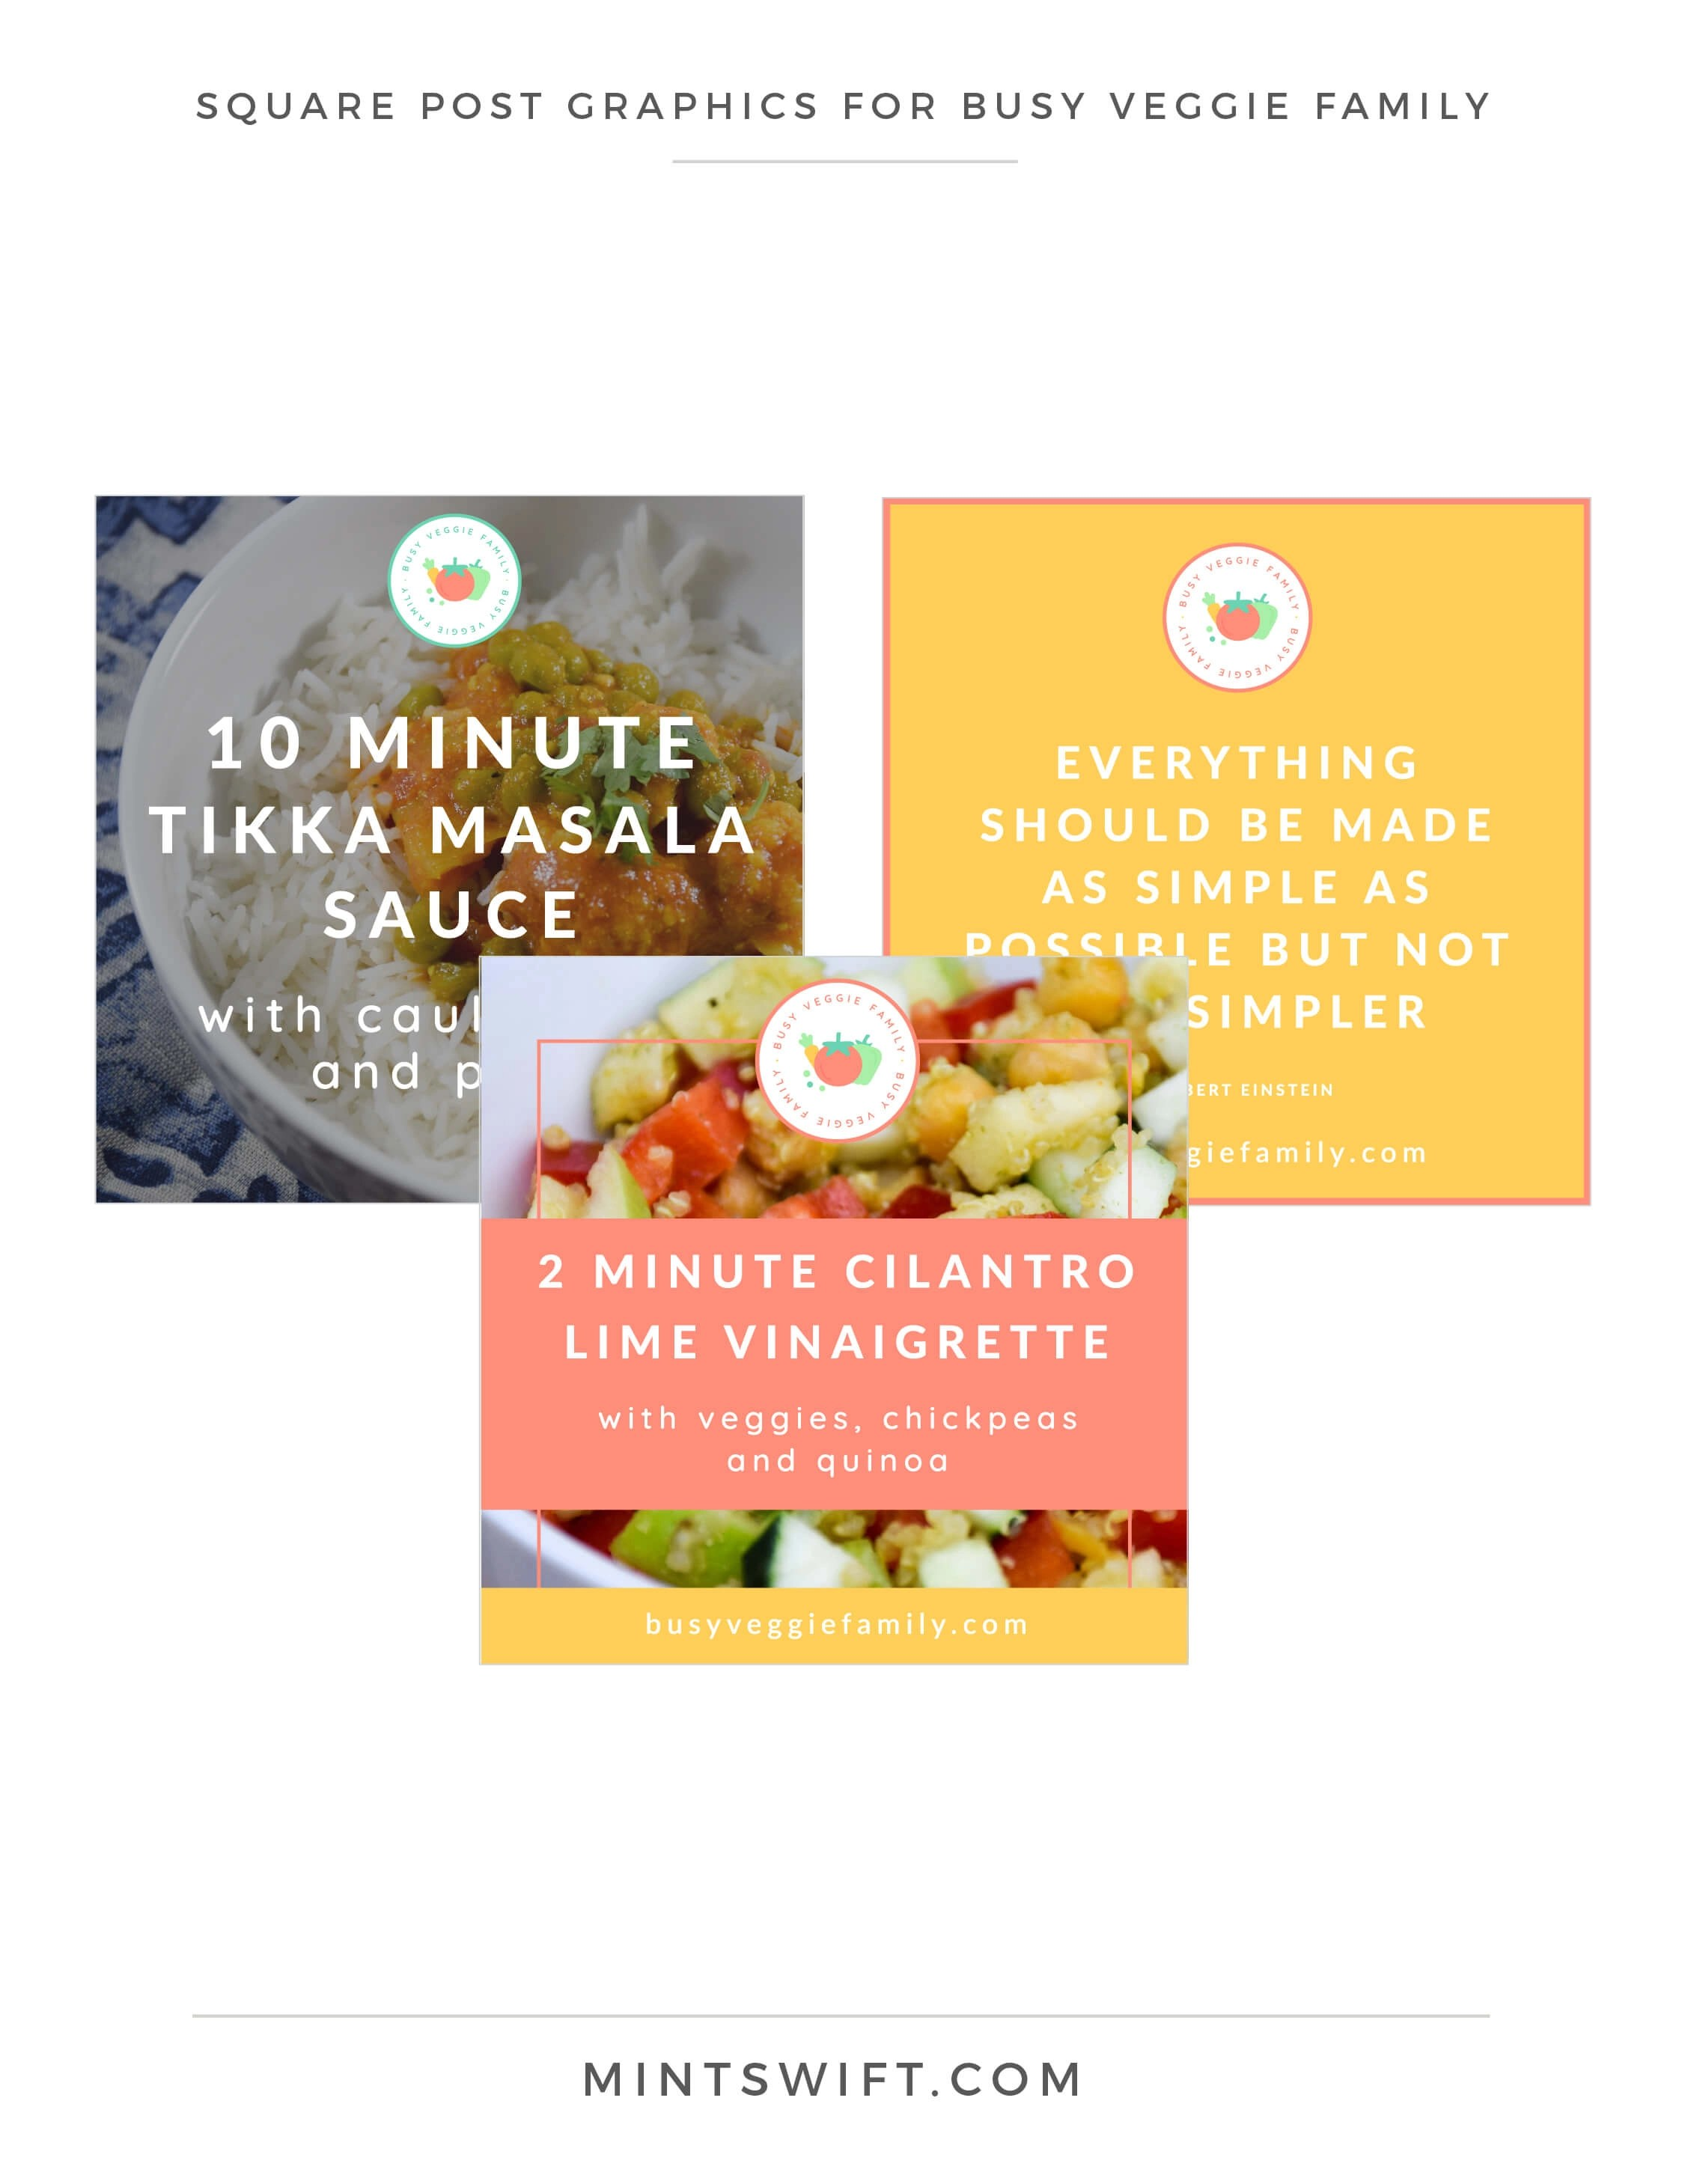 Busy Veggie Family - Square Post Graphics - Brand & Website Design Package - MintSwift